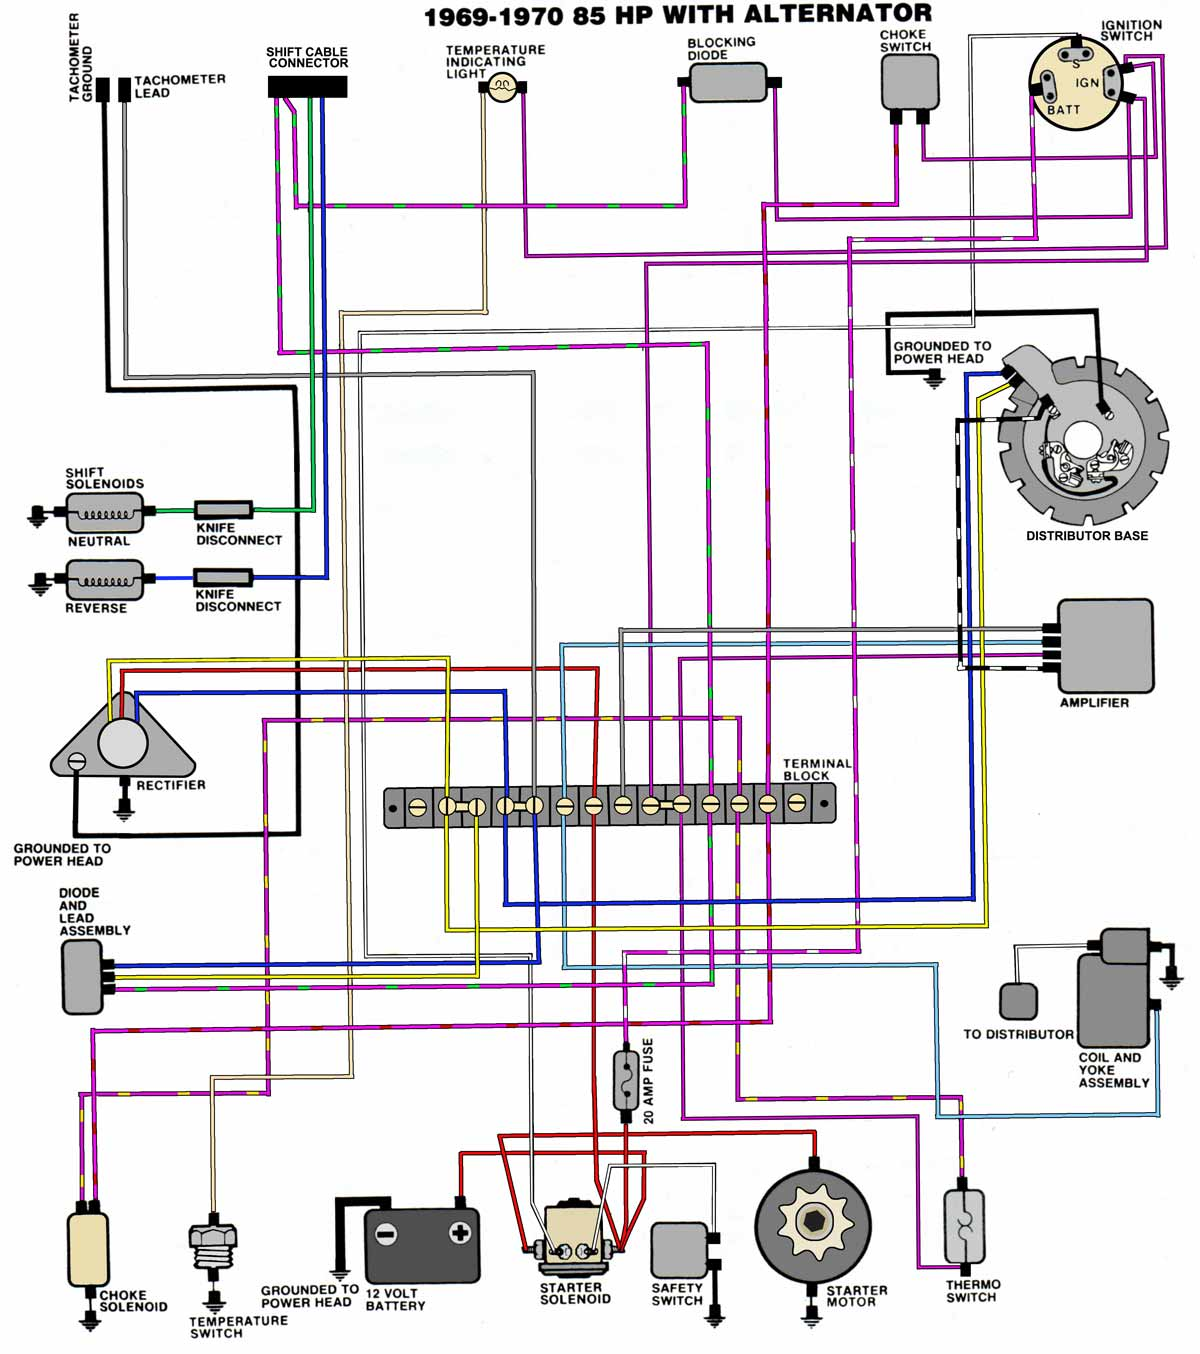 Marine Throttle Control Wiring Diagram Evinrude Engine Schematic Diagrams Johnson Outboard Mastertech Kazuma